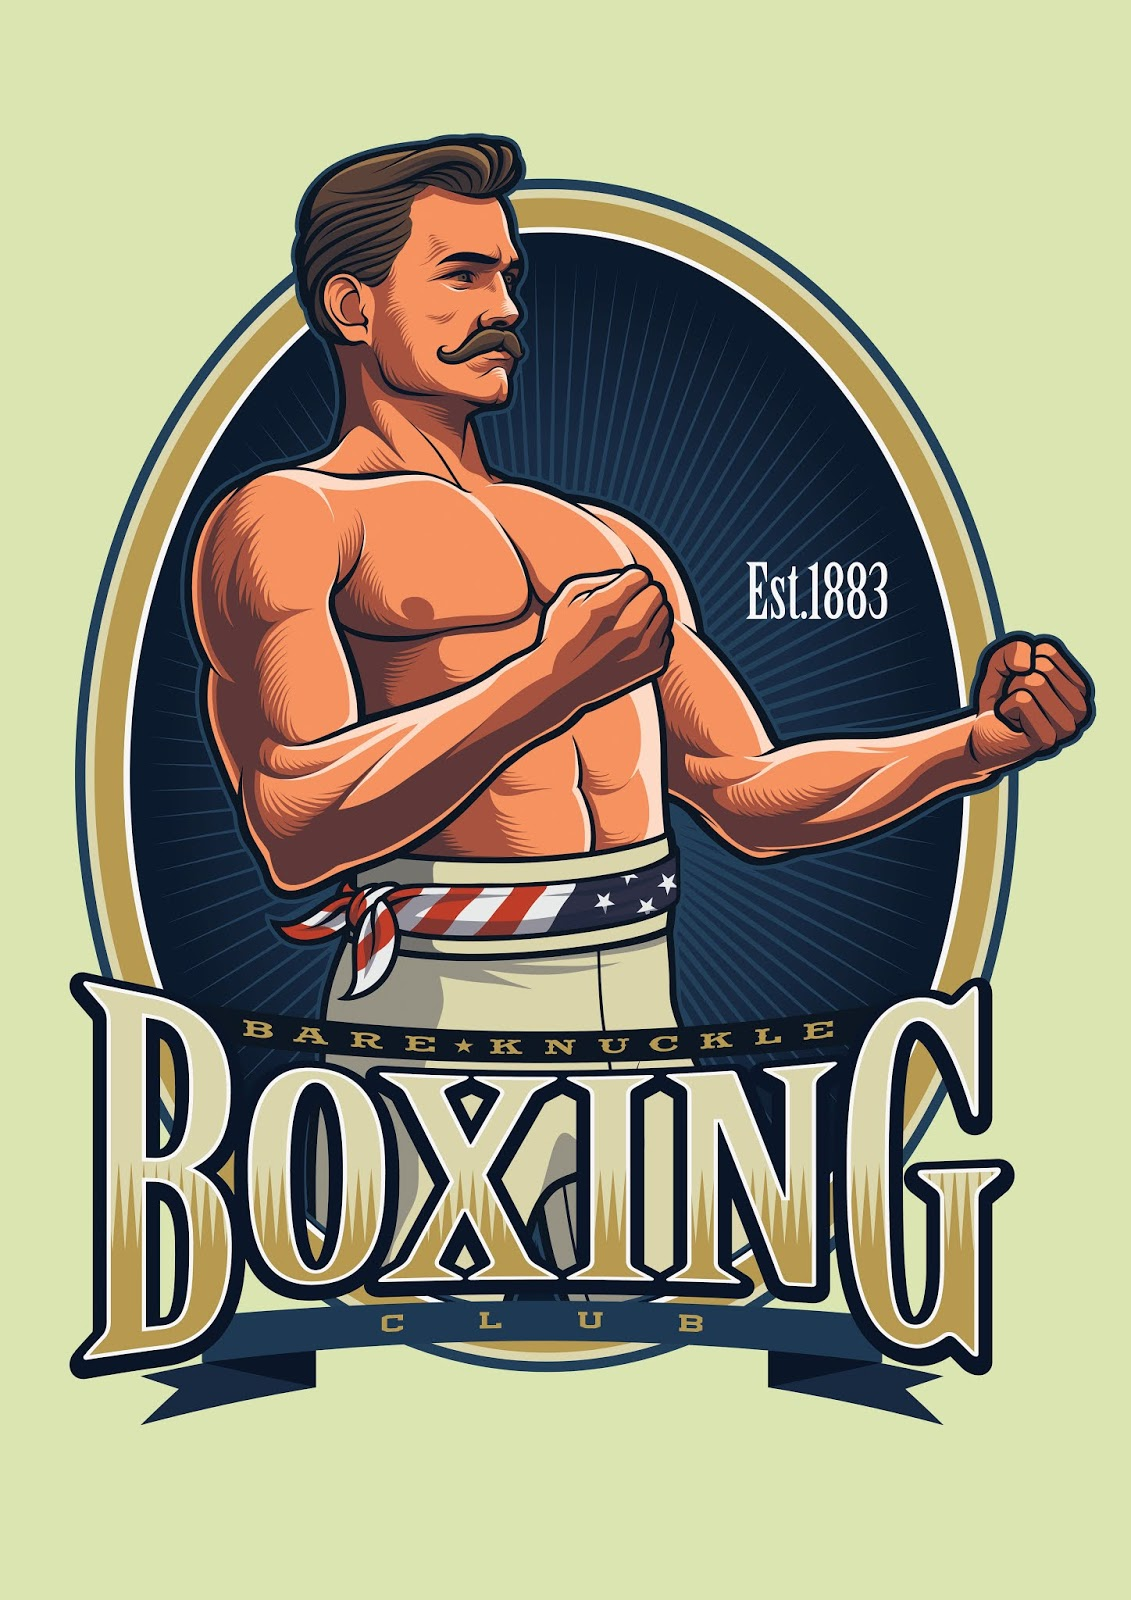 Vintage Boxing Logo Template Free Download Vector CDR, AI, EPS and PNG Formats